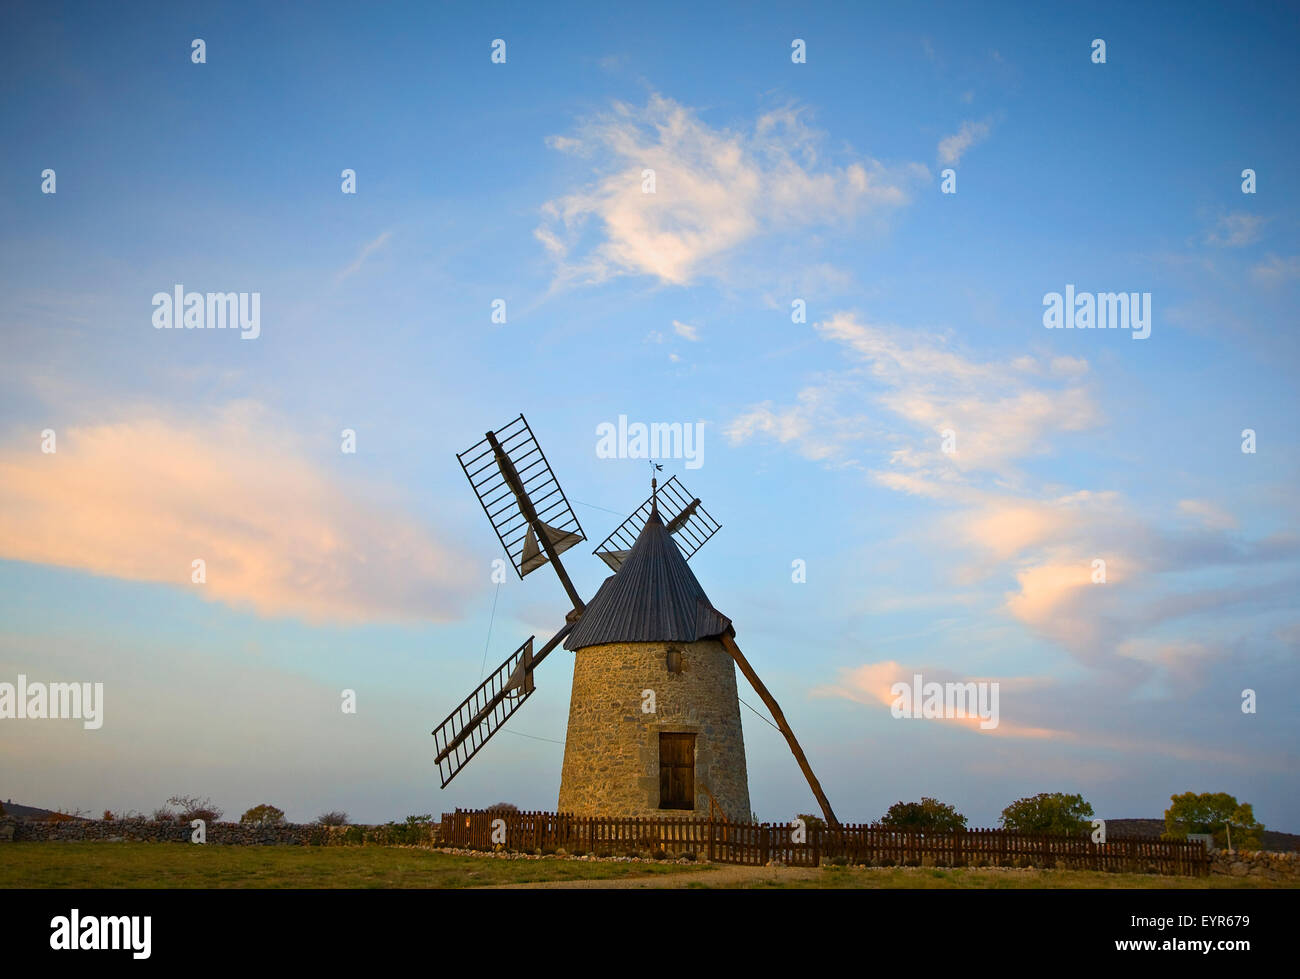 St Pierre de la Fage mill is located in the department of Hérault, not far from the Cirque de Navacelles, Languedoc - Stock Image